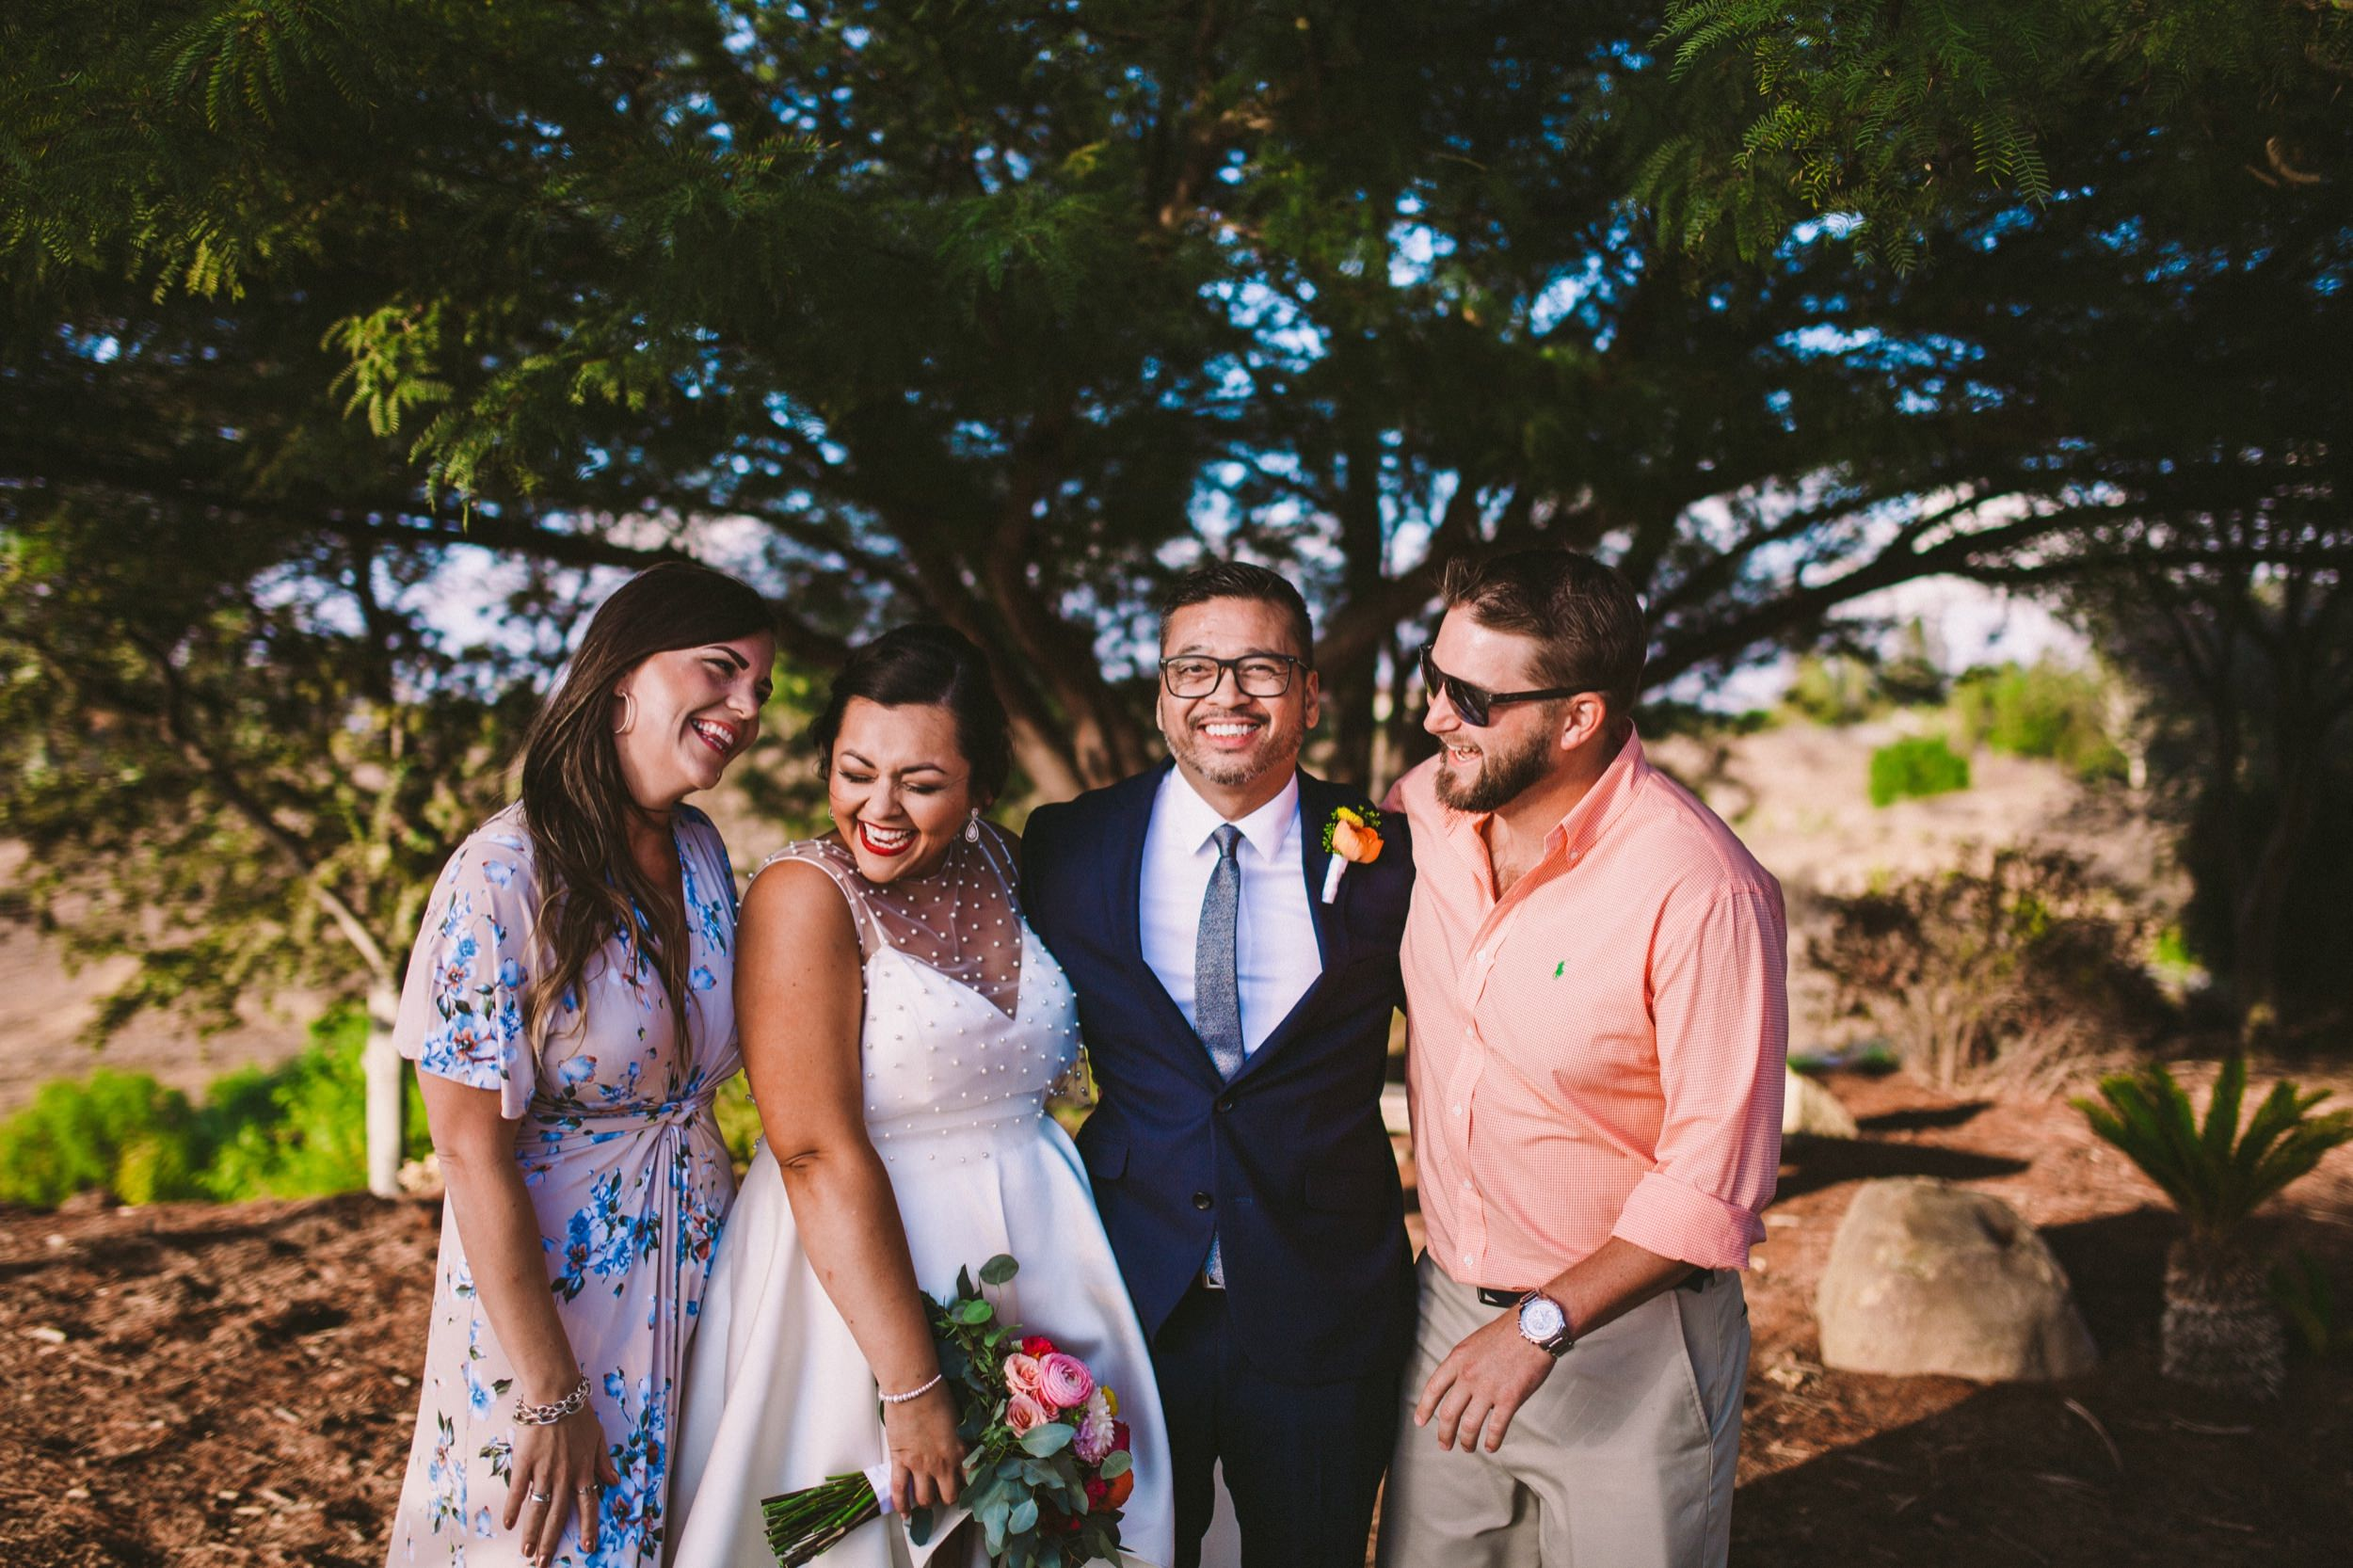 Intimate, Relaxed & Colorful Wedding Photography in Temecula-345.jpg